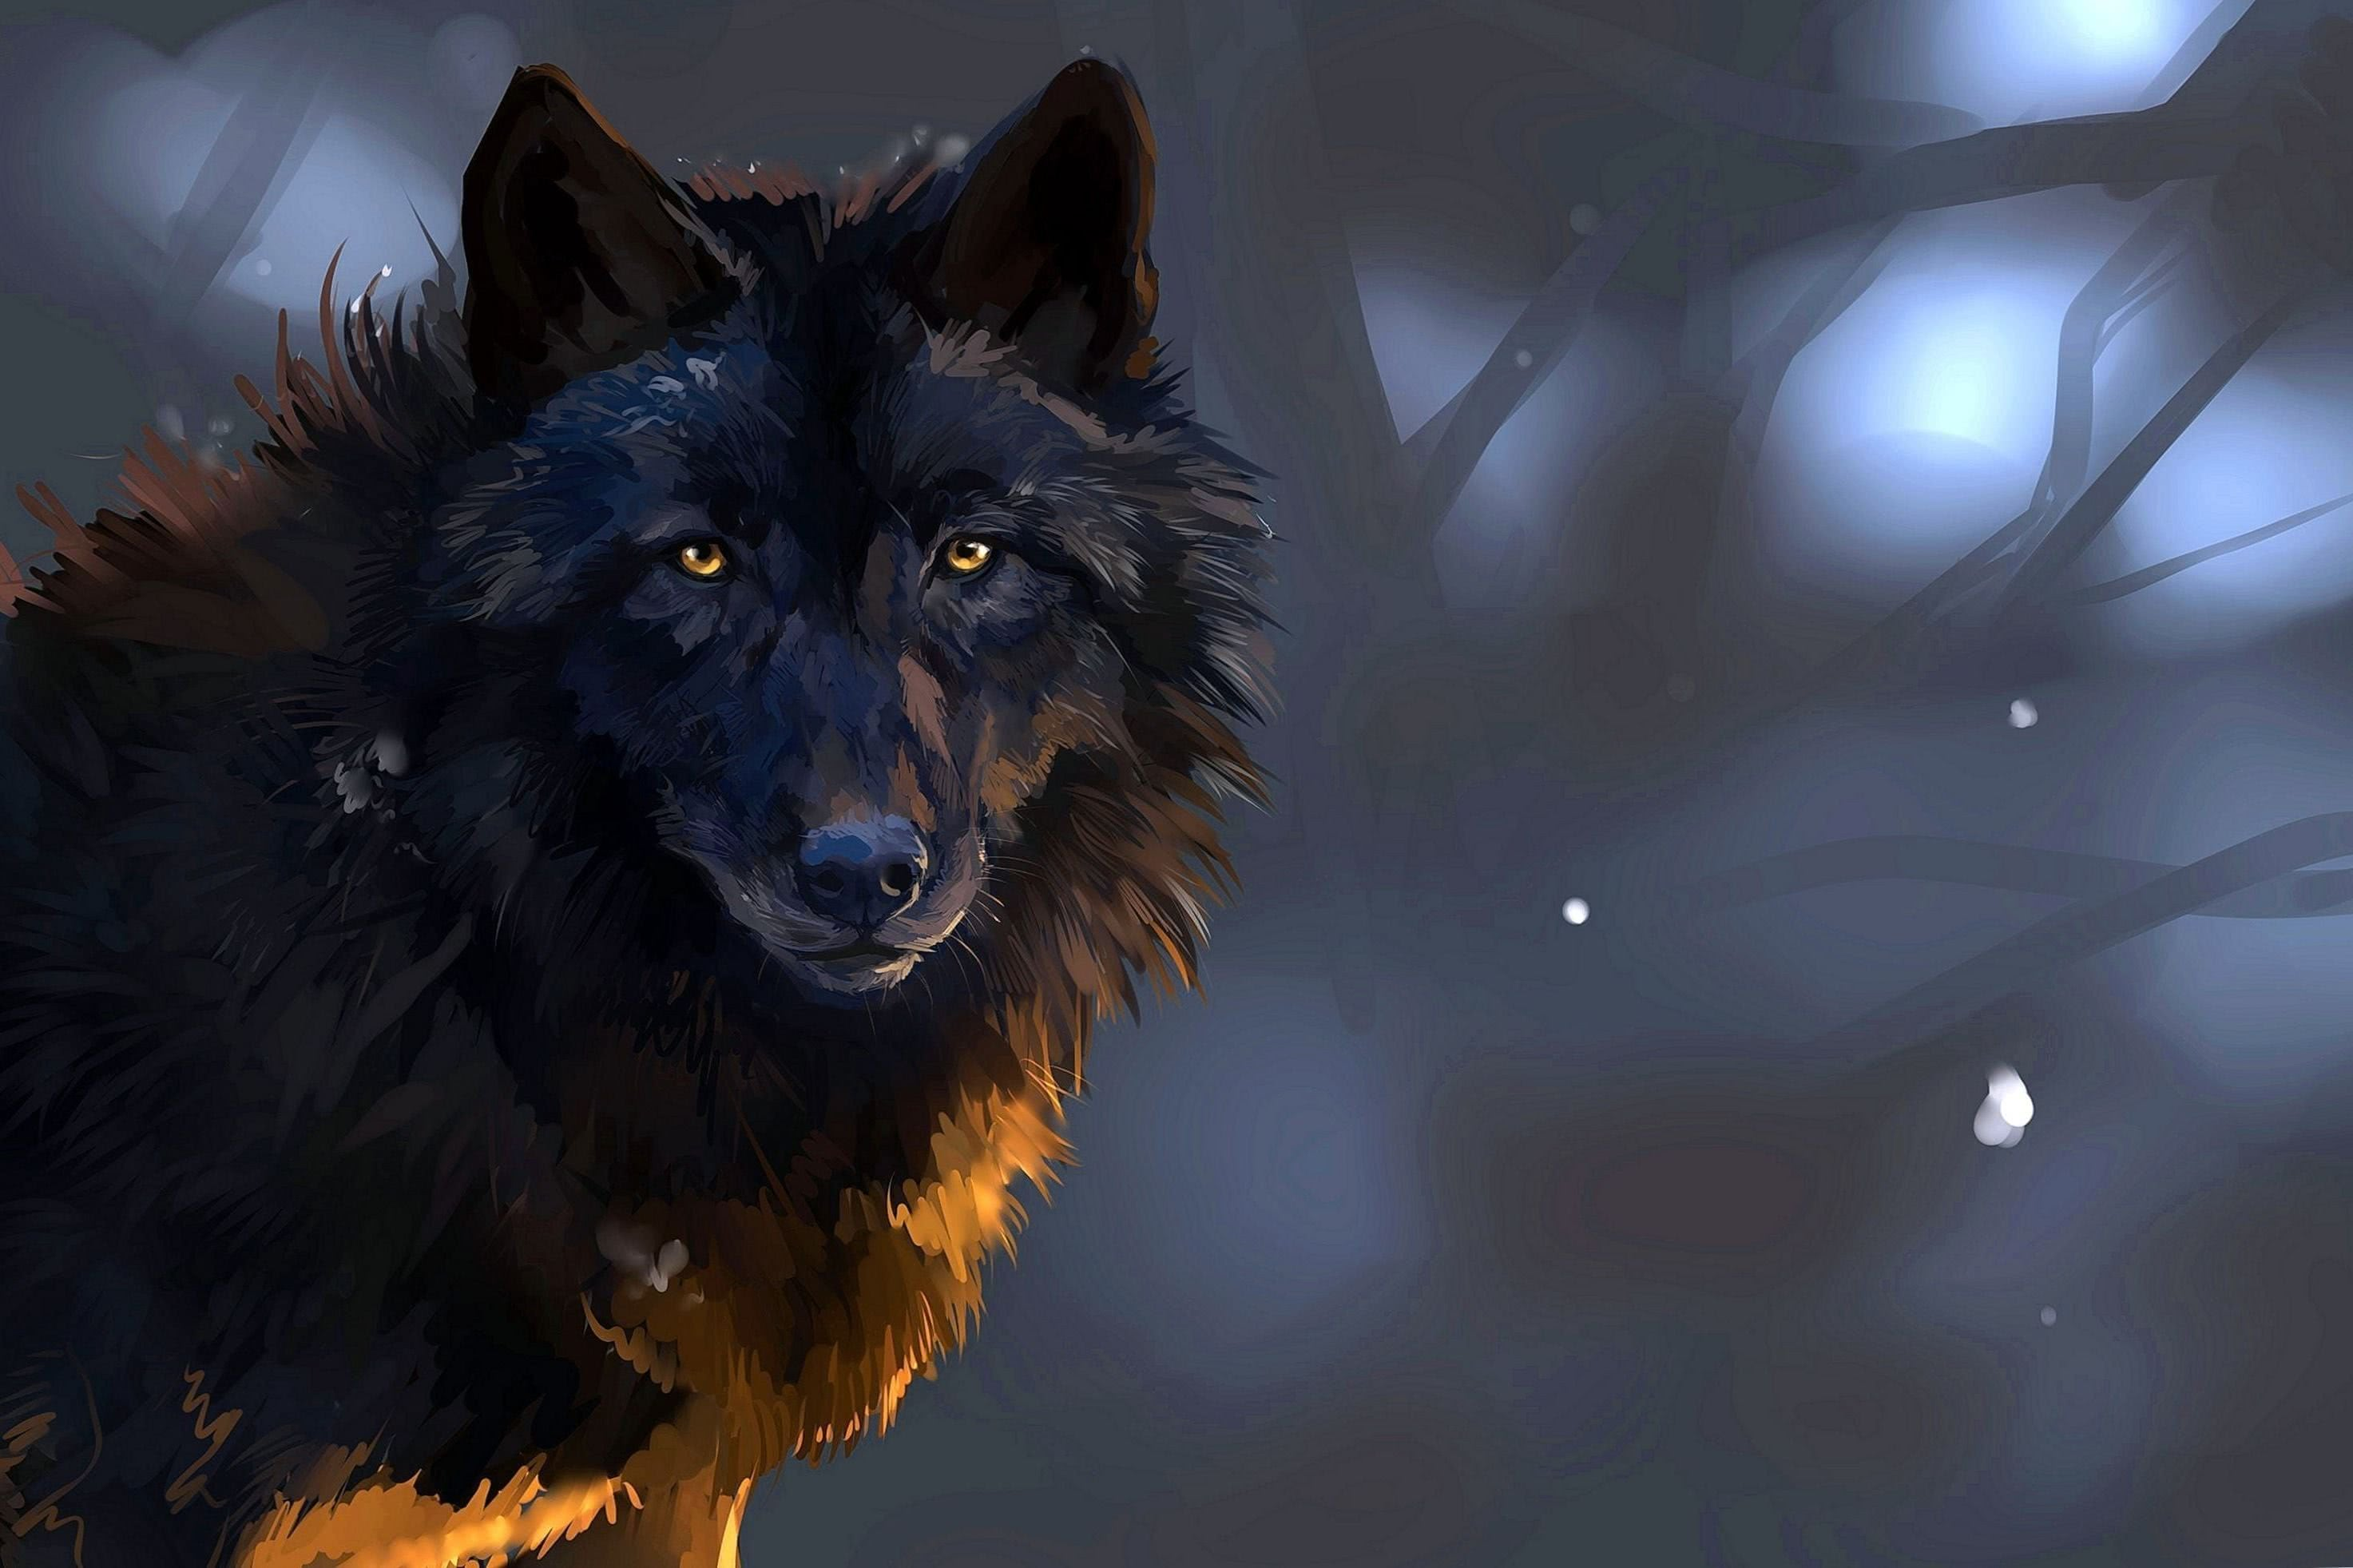 Wolf Wallpapers 3000x2000